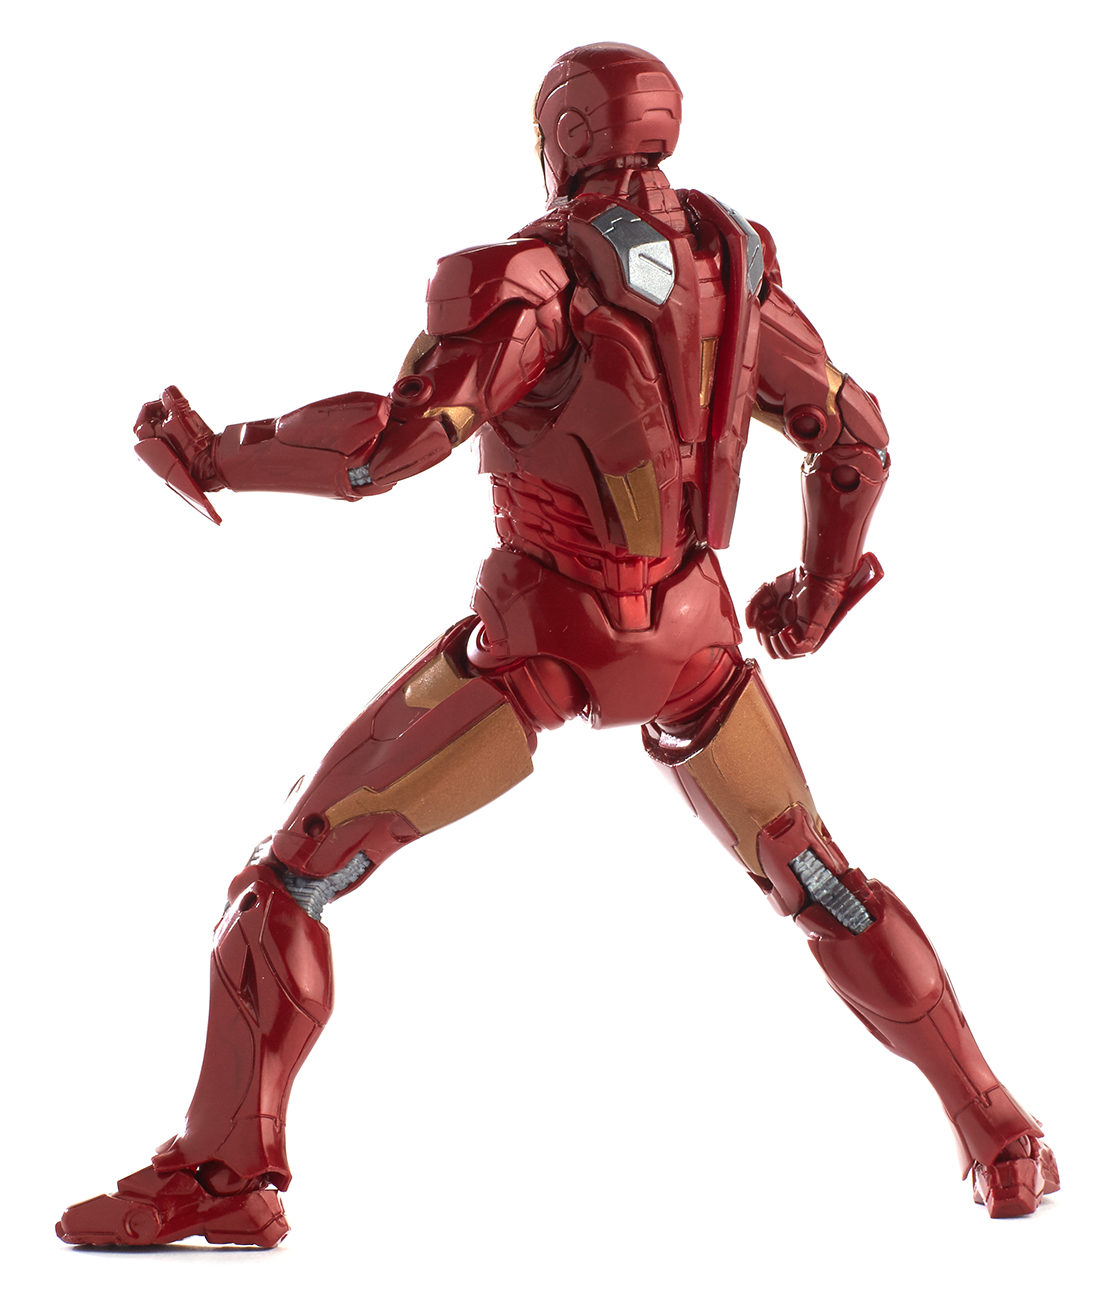 MARVEL LEGENDS 10th Anniversary Cinematic Universe 003 Avengers Iron Man Mark 7